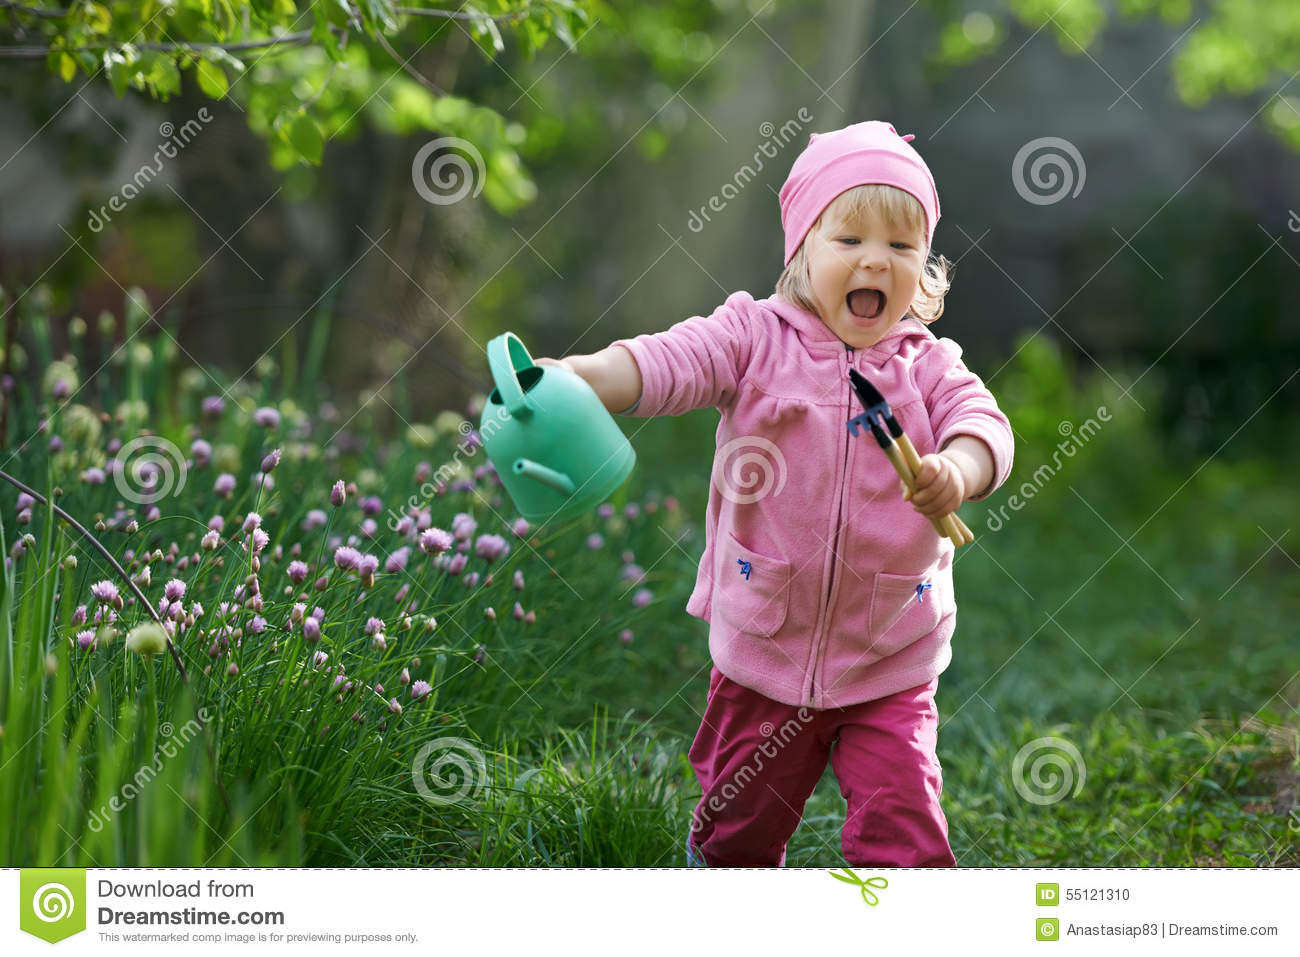 I adore country life. Child is in a hurry to start gardening